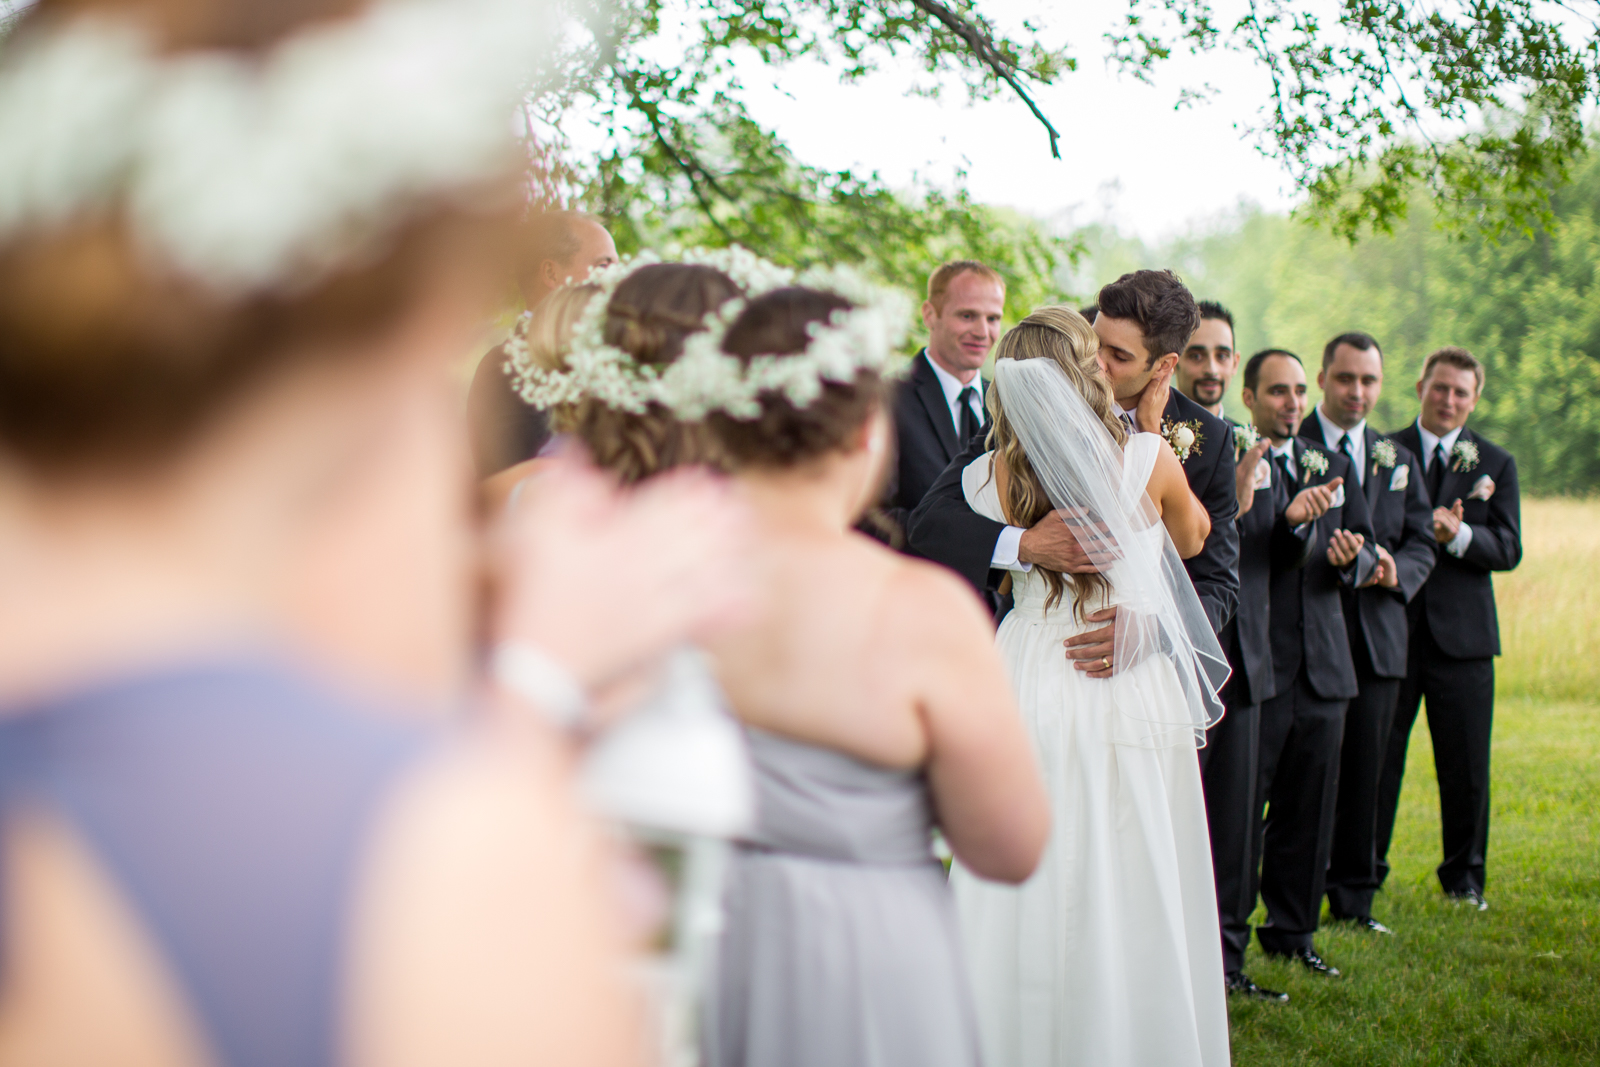 Four_Wings_Photography_Wedding_Red_Barn_at_Hampshire_College-30.jpg